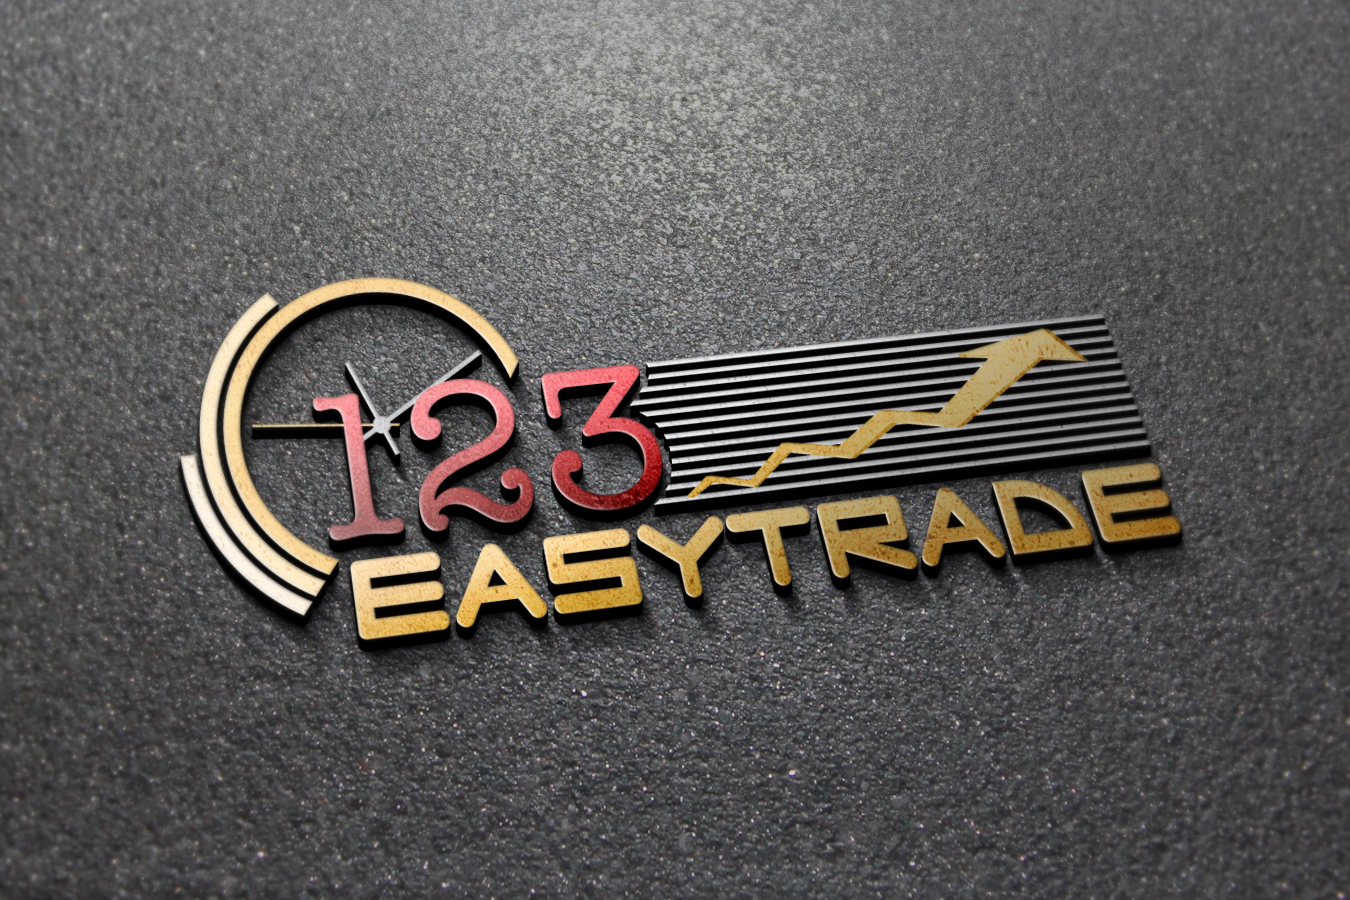 design 3 UNIQUE HD logos in 24hrs with source/vector files included, FOR ANY PURPOSE